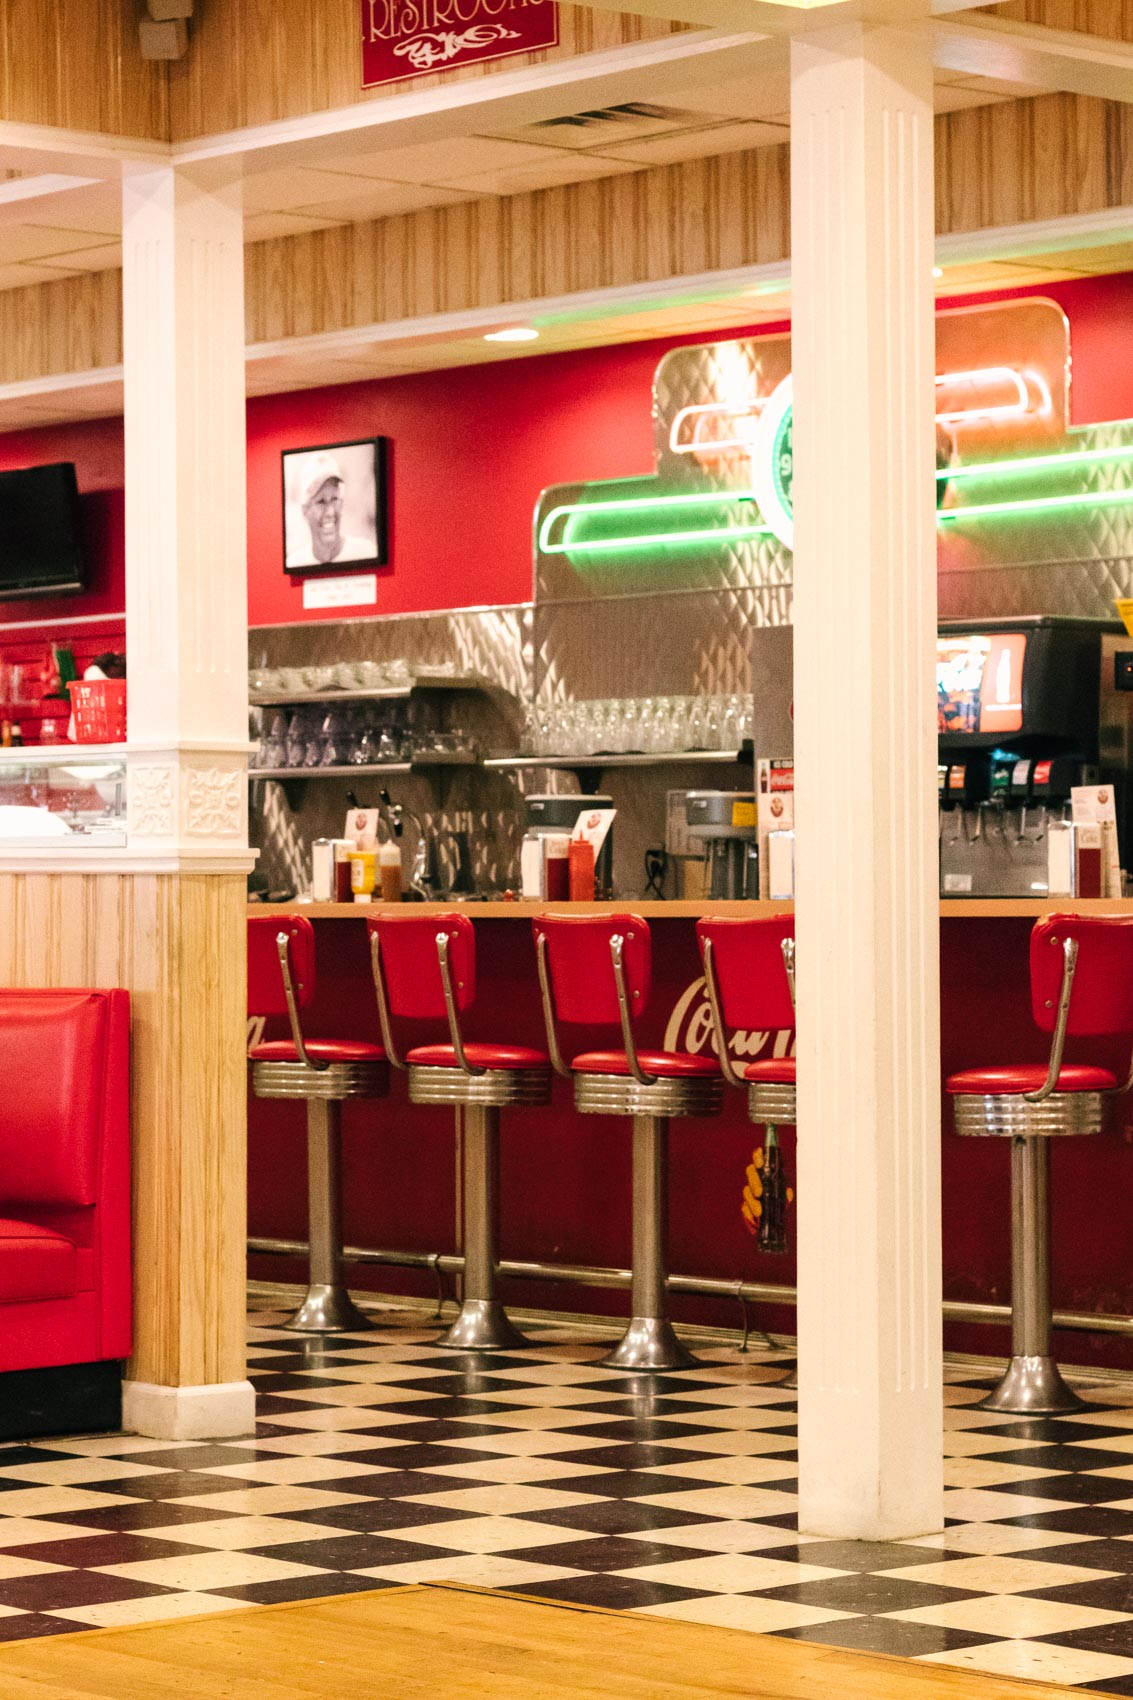 Big Al's Soda Fountain & Grill | Retro diner in Manteo, NC